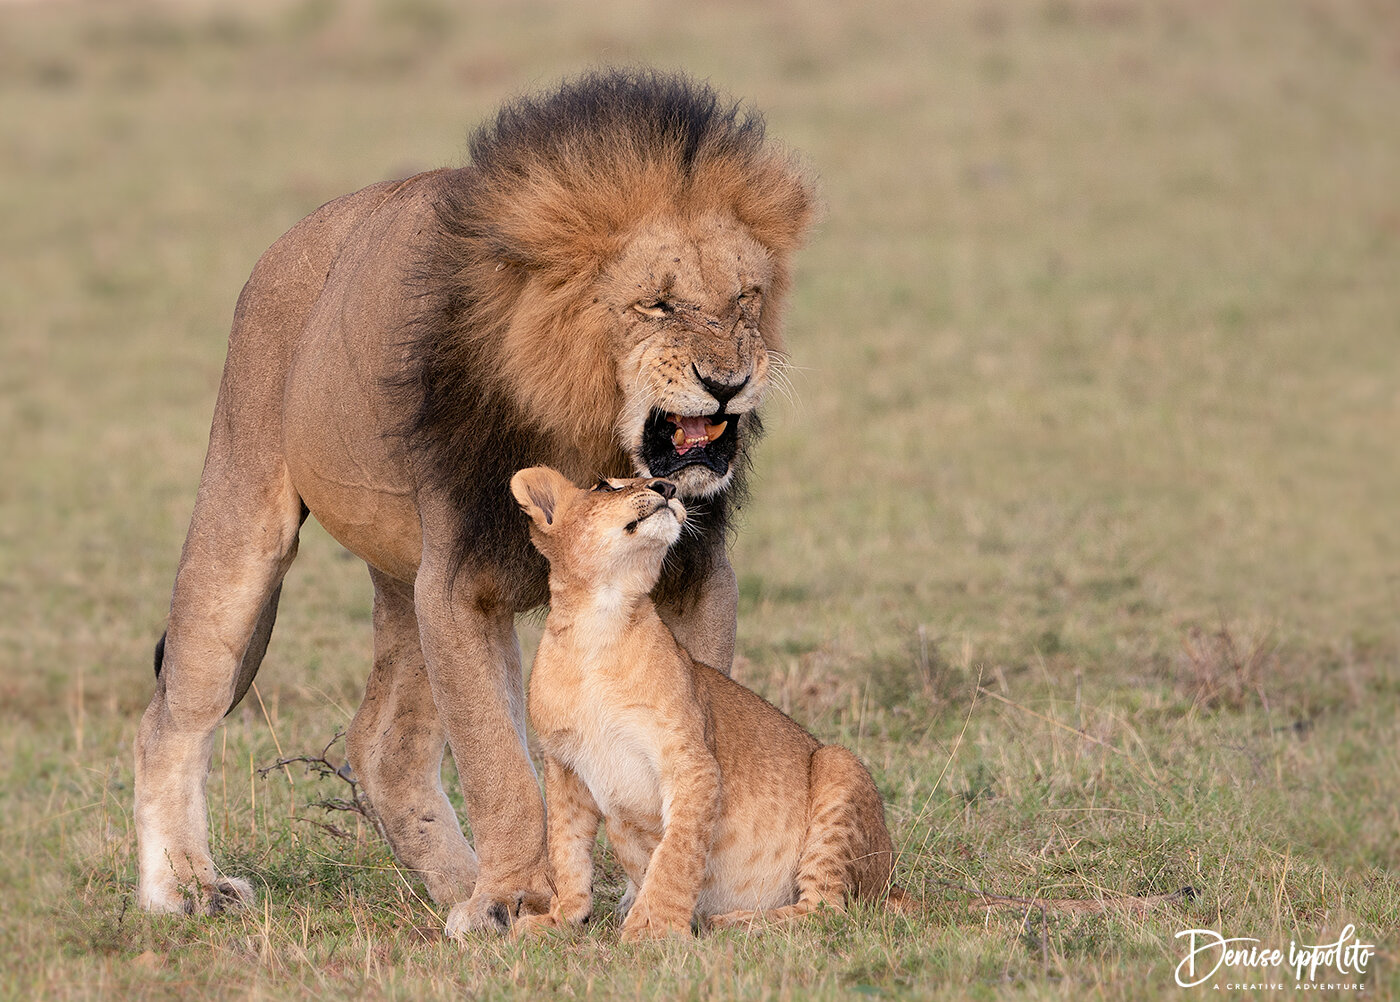 The mighty male was very tender with this rambunctious cub. Though his patience grew weak at times.